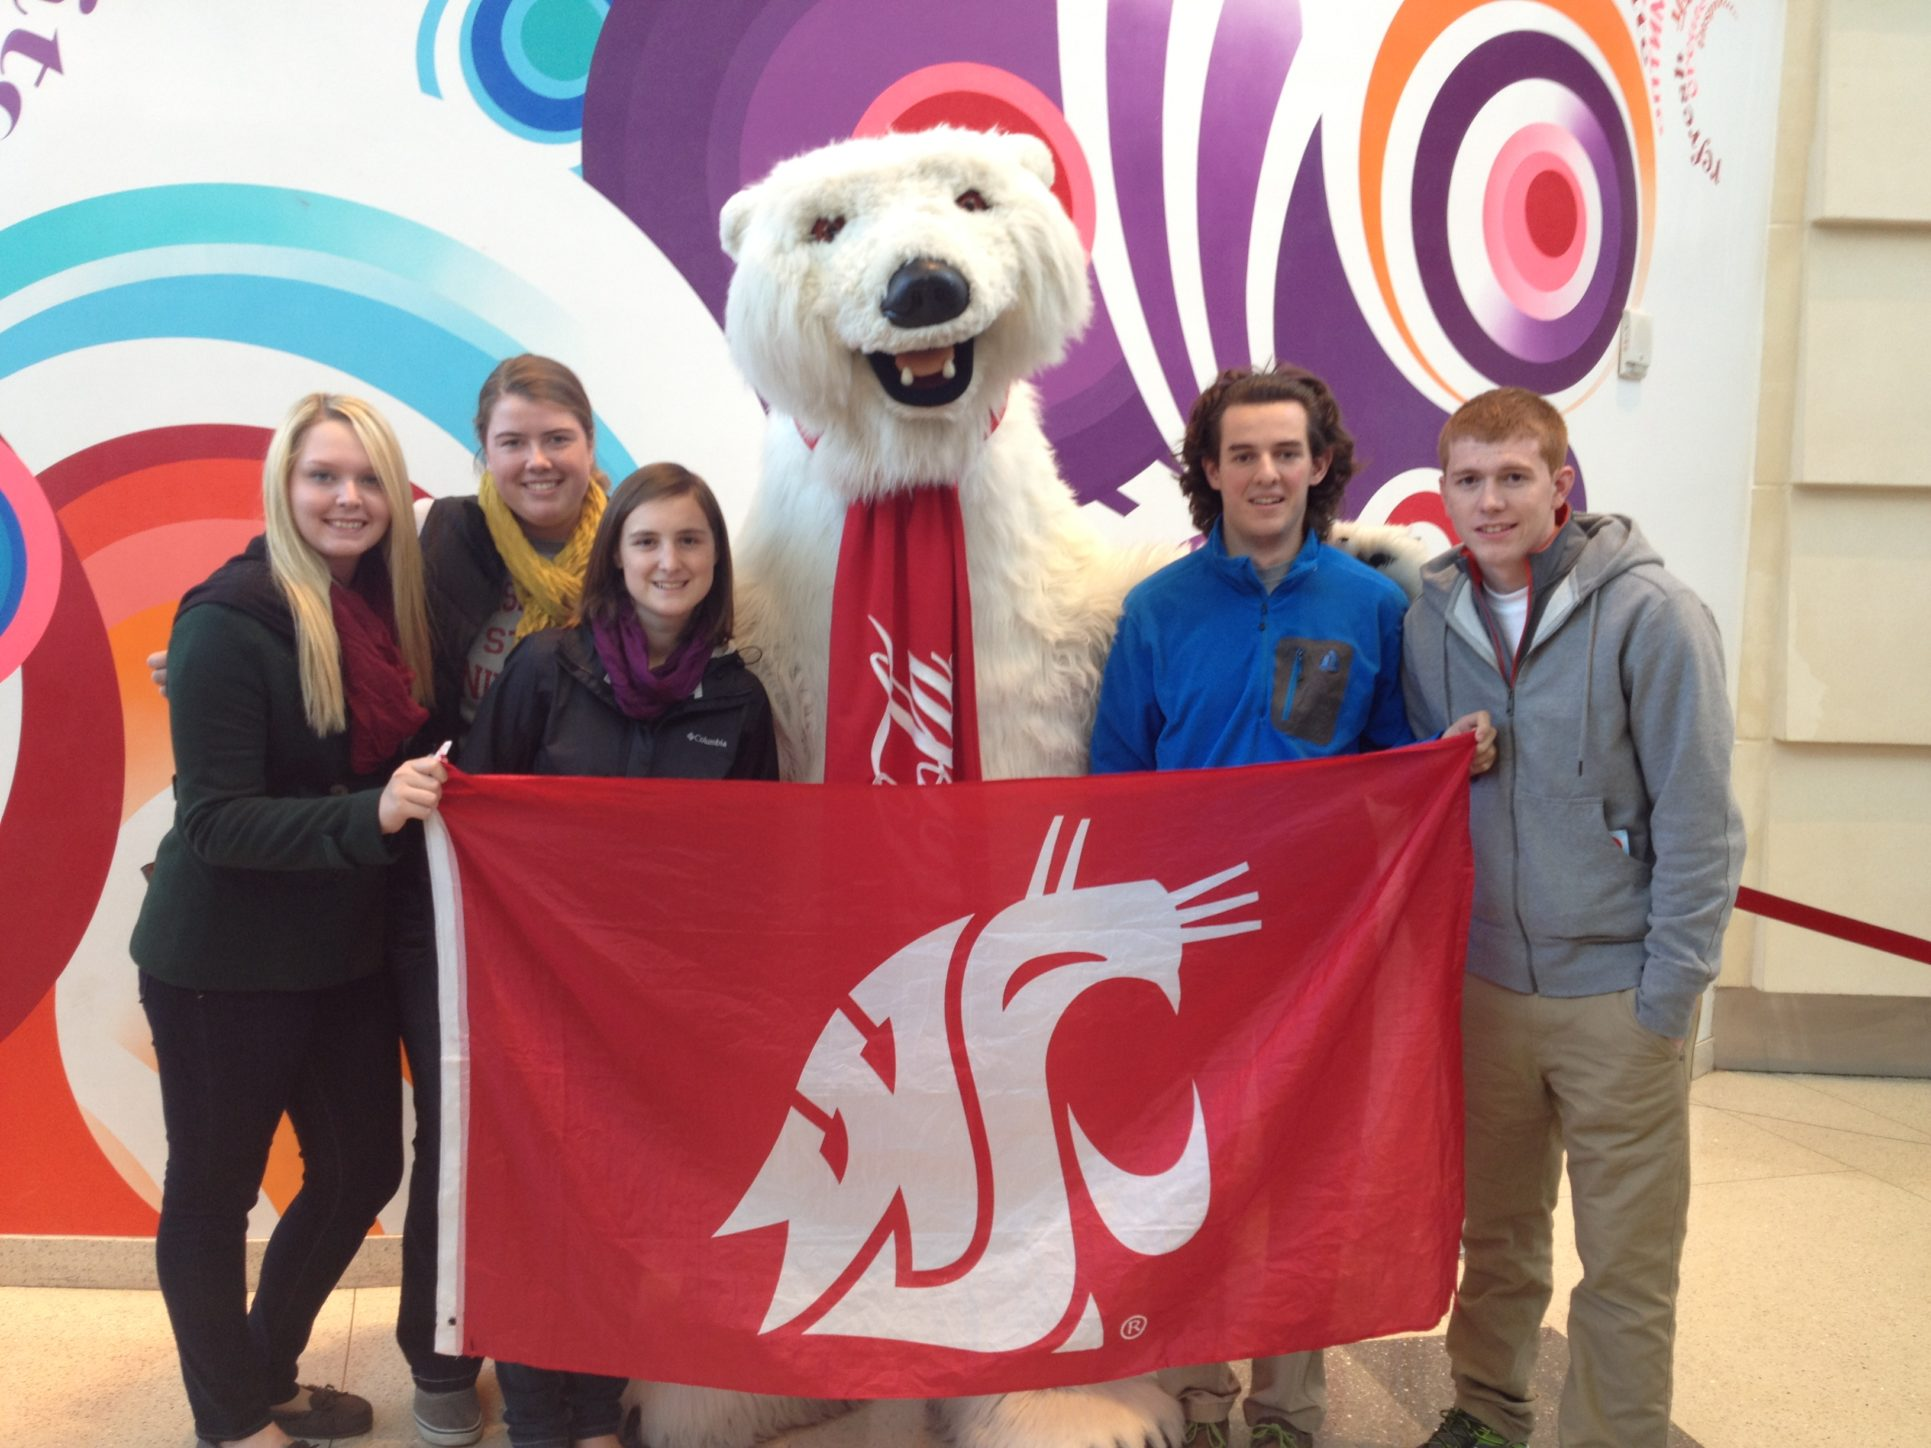 Five students and the Coca-Cola bear mascot pose holding a WSU Cougar flag.